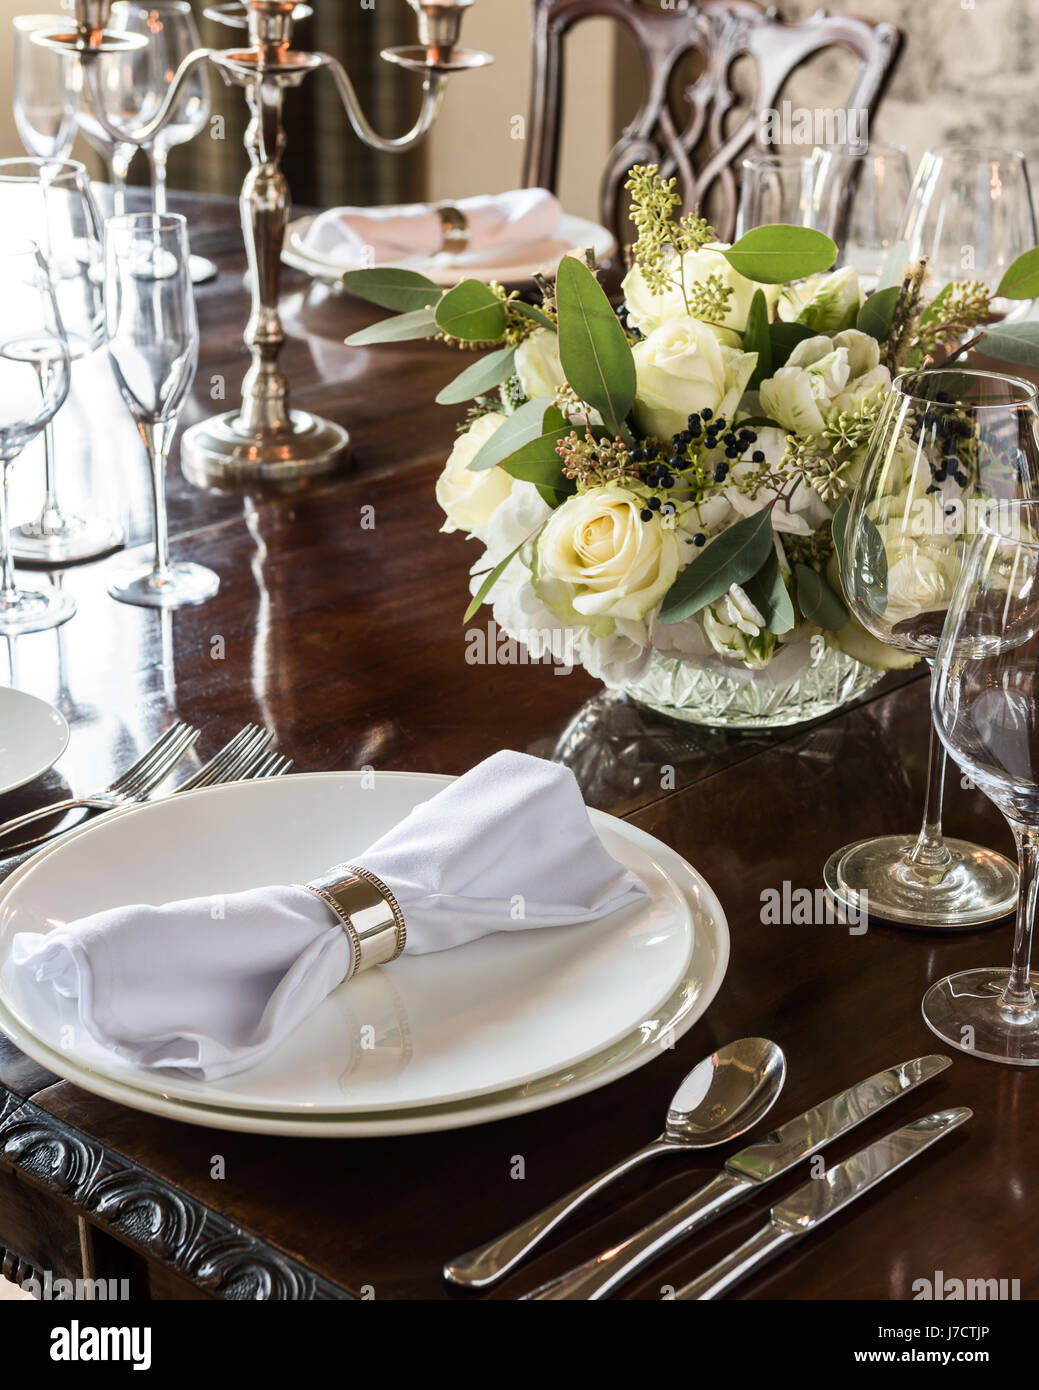 Formal dining place laid with silver cutlery and posey of white roses - Stock Image